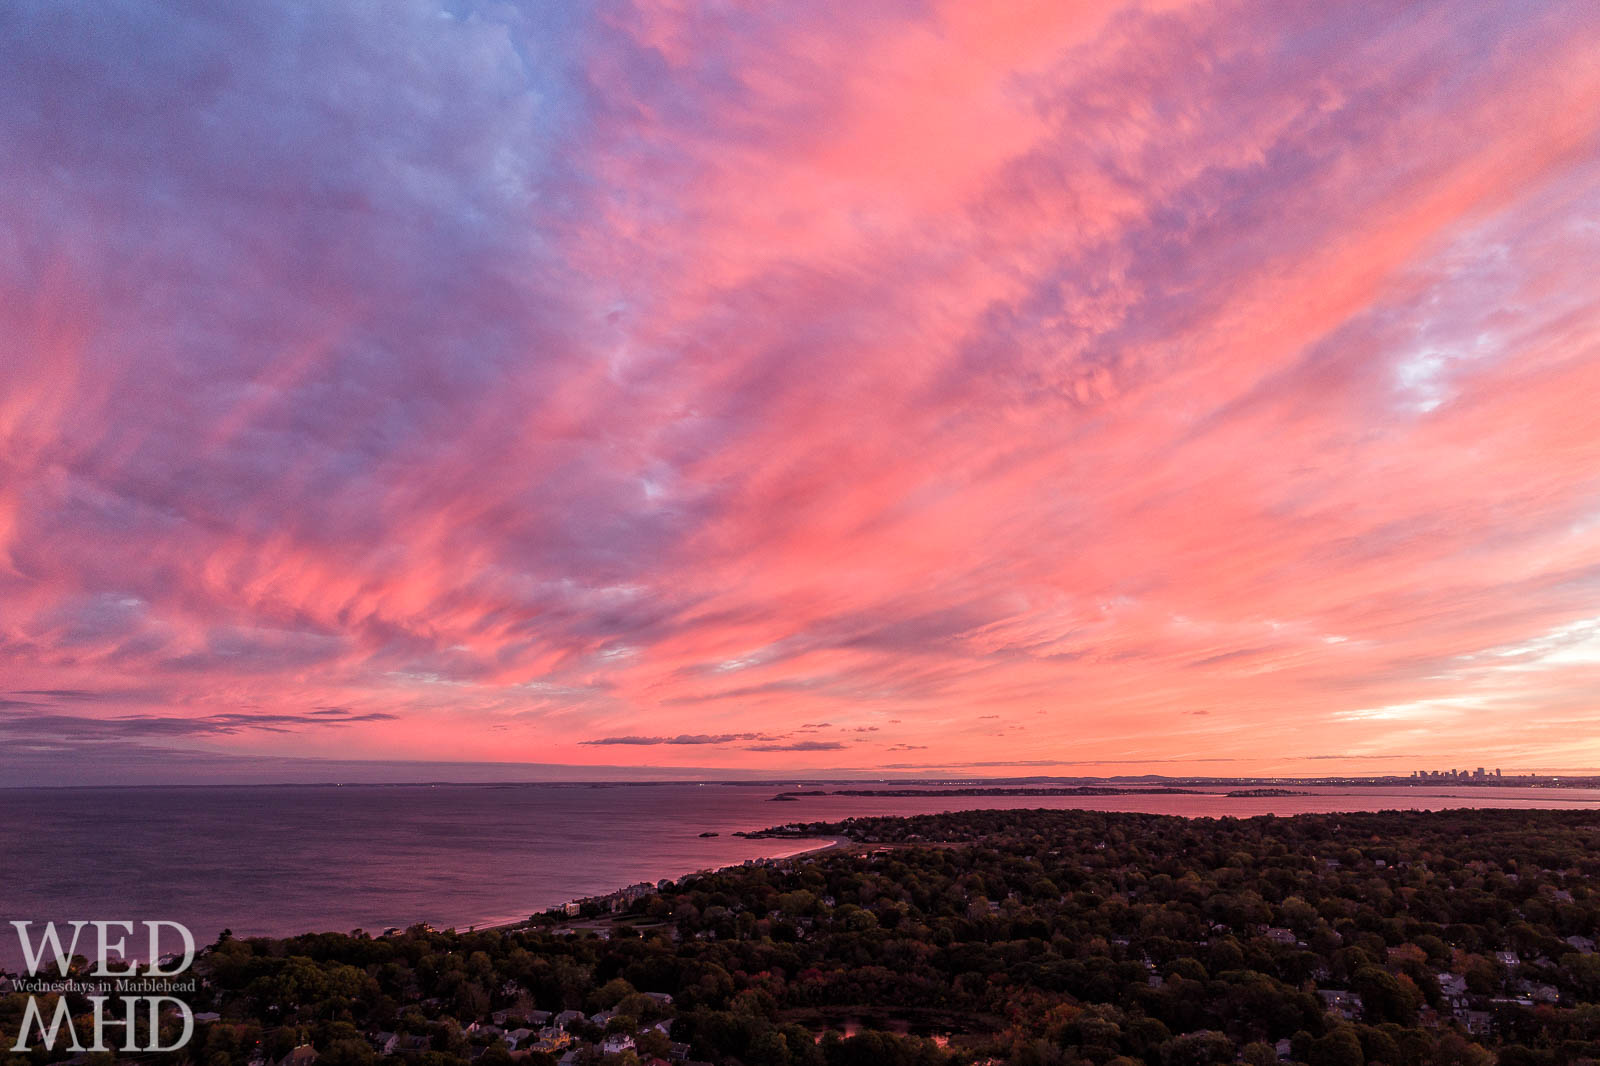 As pink light exploded in the sky, I took the drone up for a quick sunset flight directly over my house in Marblehead catching this view of the Boston skyline